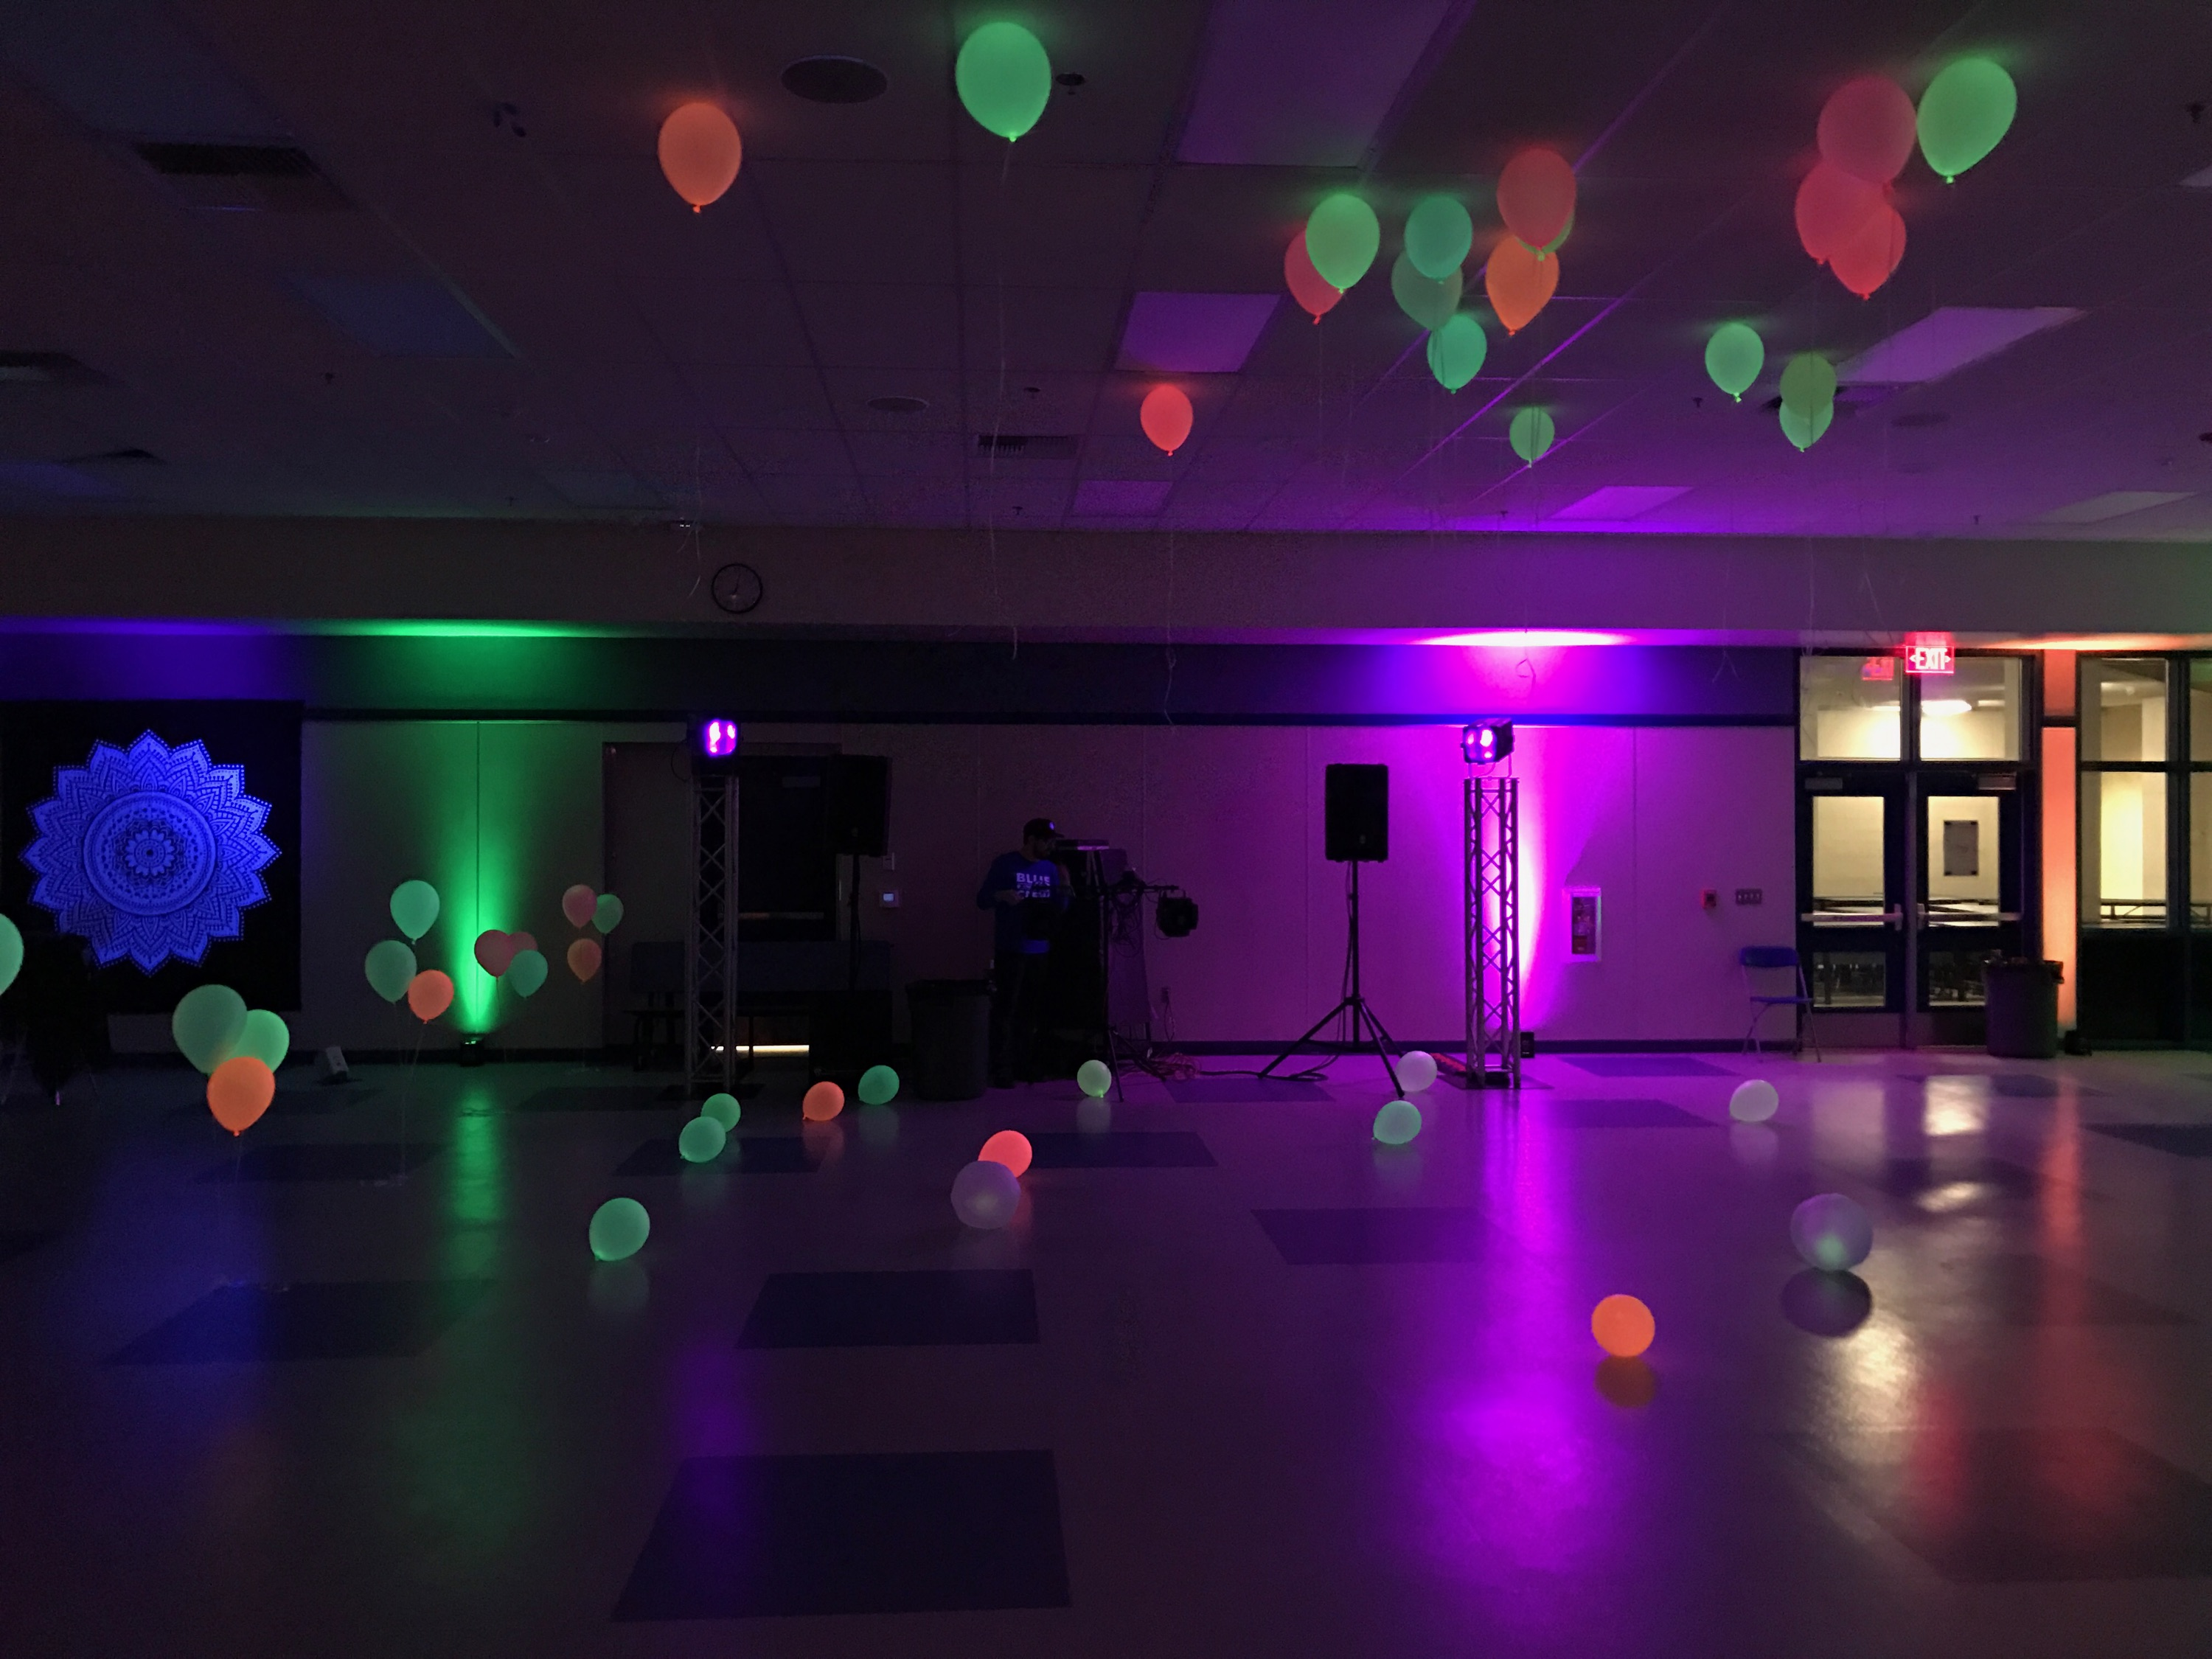 School Dances Rallies and Games Black Light Rallies Balls and Proms Every Fifteen Minutes and Graduations No matter the event your school is having ... & School Events